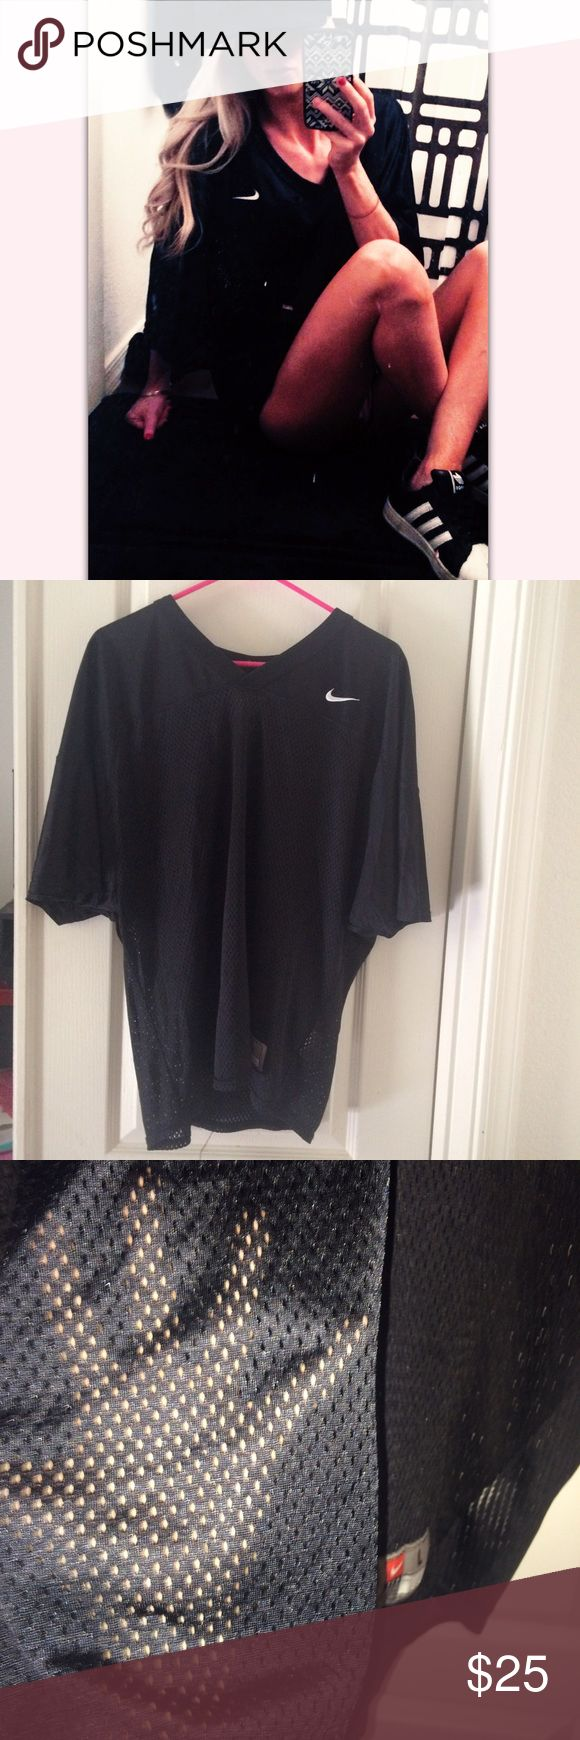 Nike original mesh Jersey shirt Nike original black mesh jersey shirt. Kids large. Cute for over bikini or out and about running errands. New with tags perfect condition Nike Tops Tees - Short Sleeve